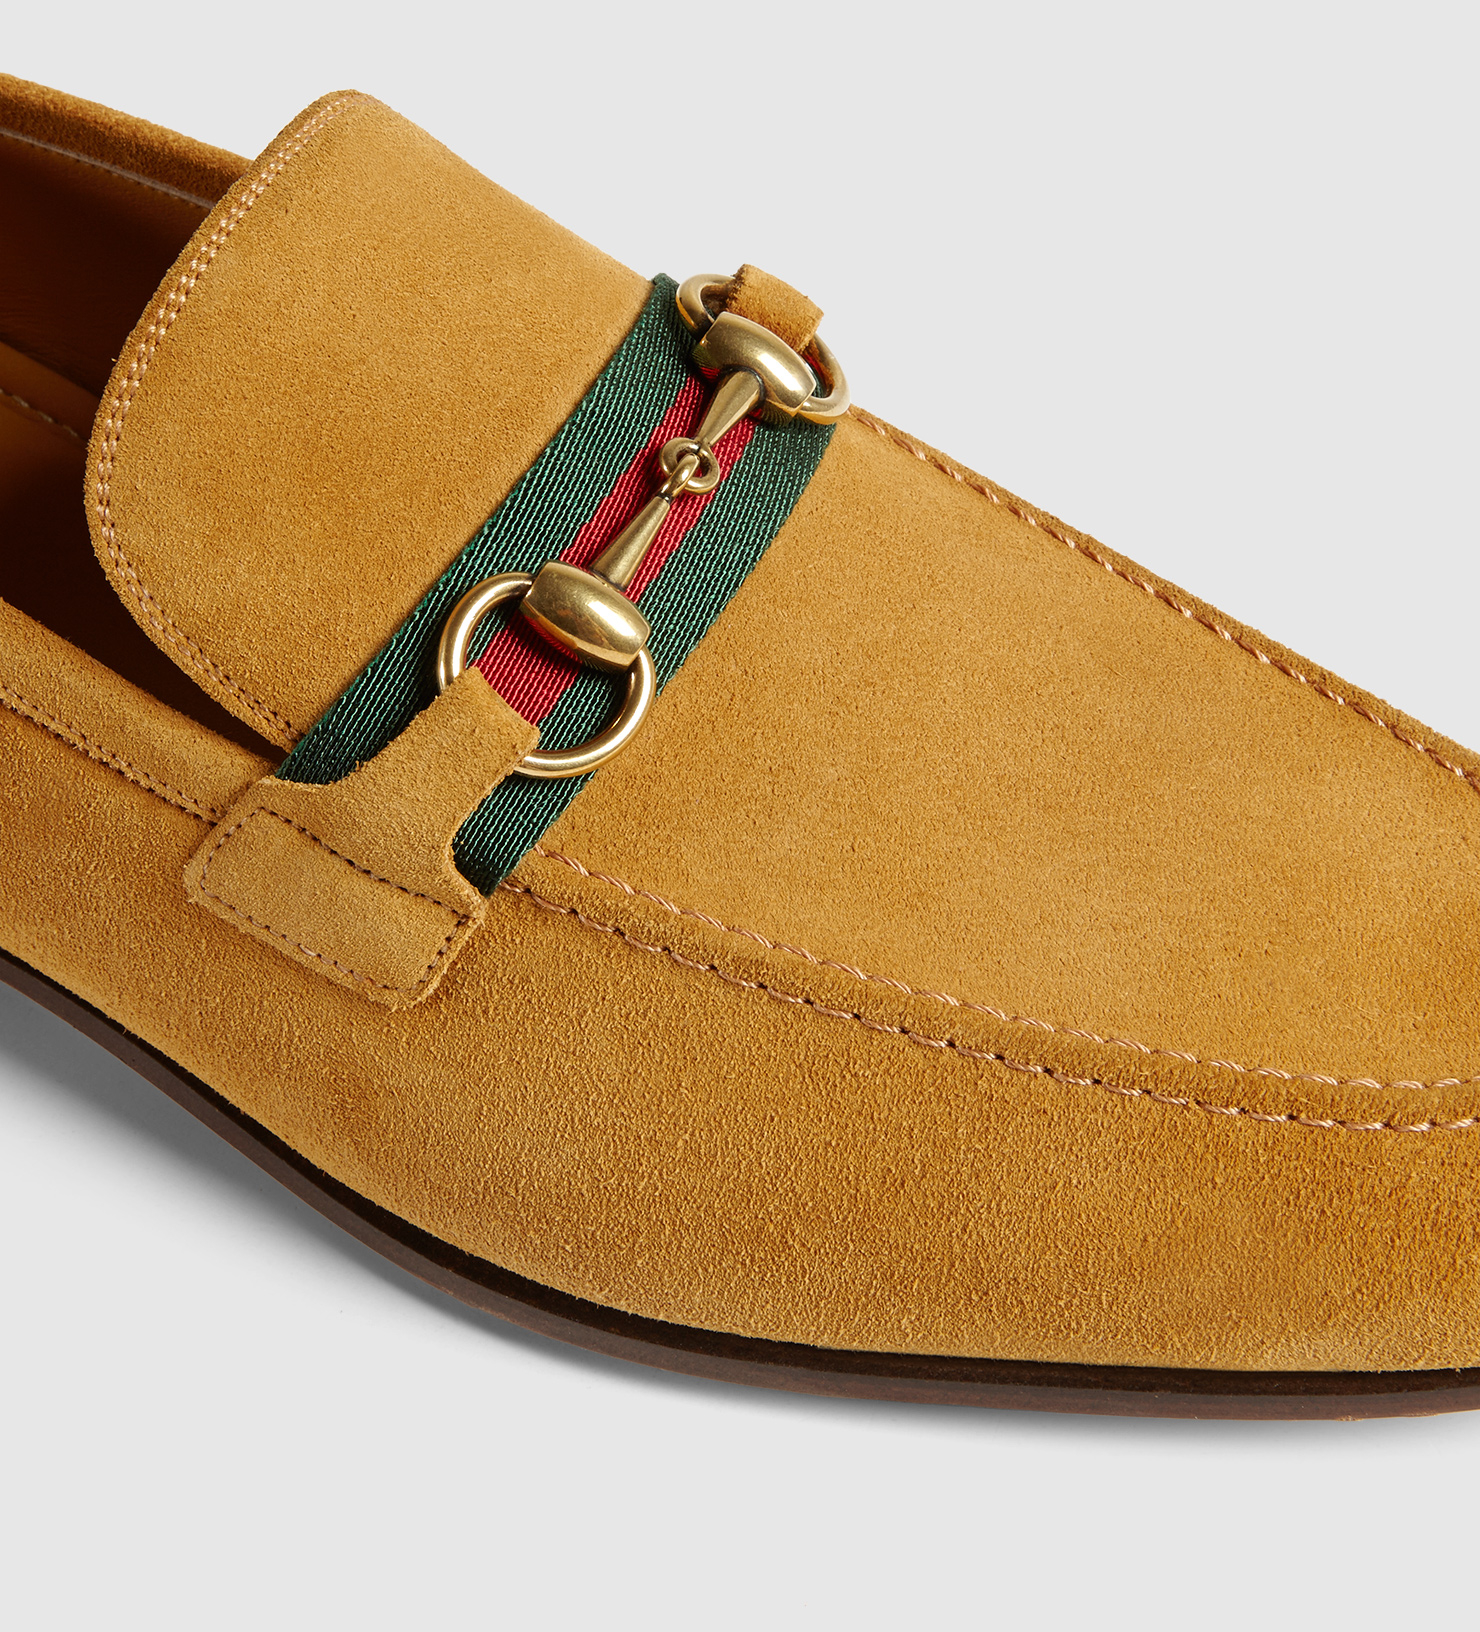 a63645dcd0d Lyst - Gucci Suede Horsebit Loafer With Web in Yellow for Men